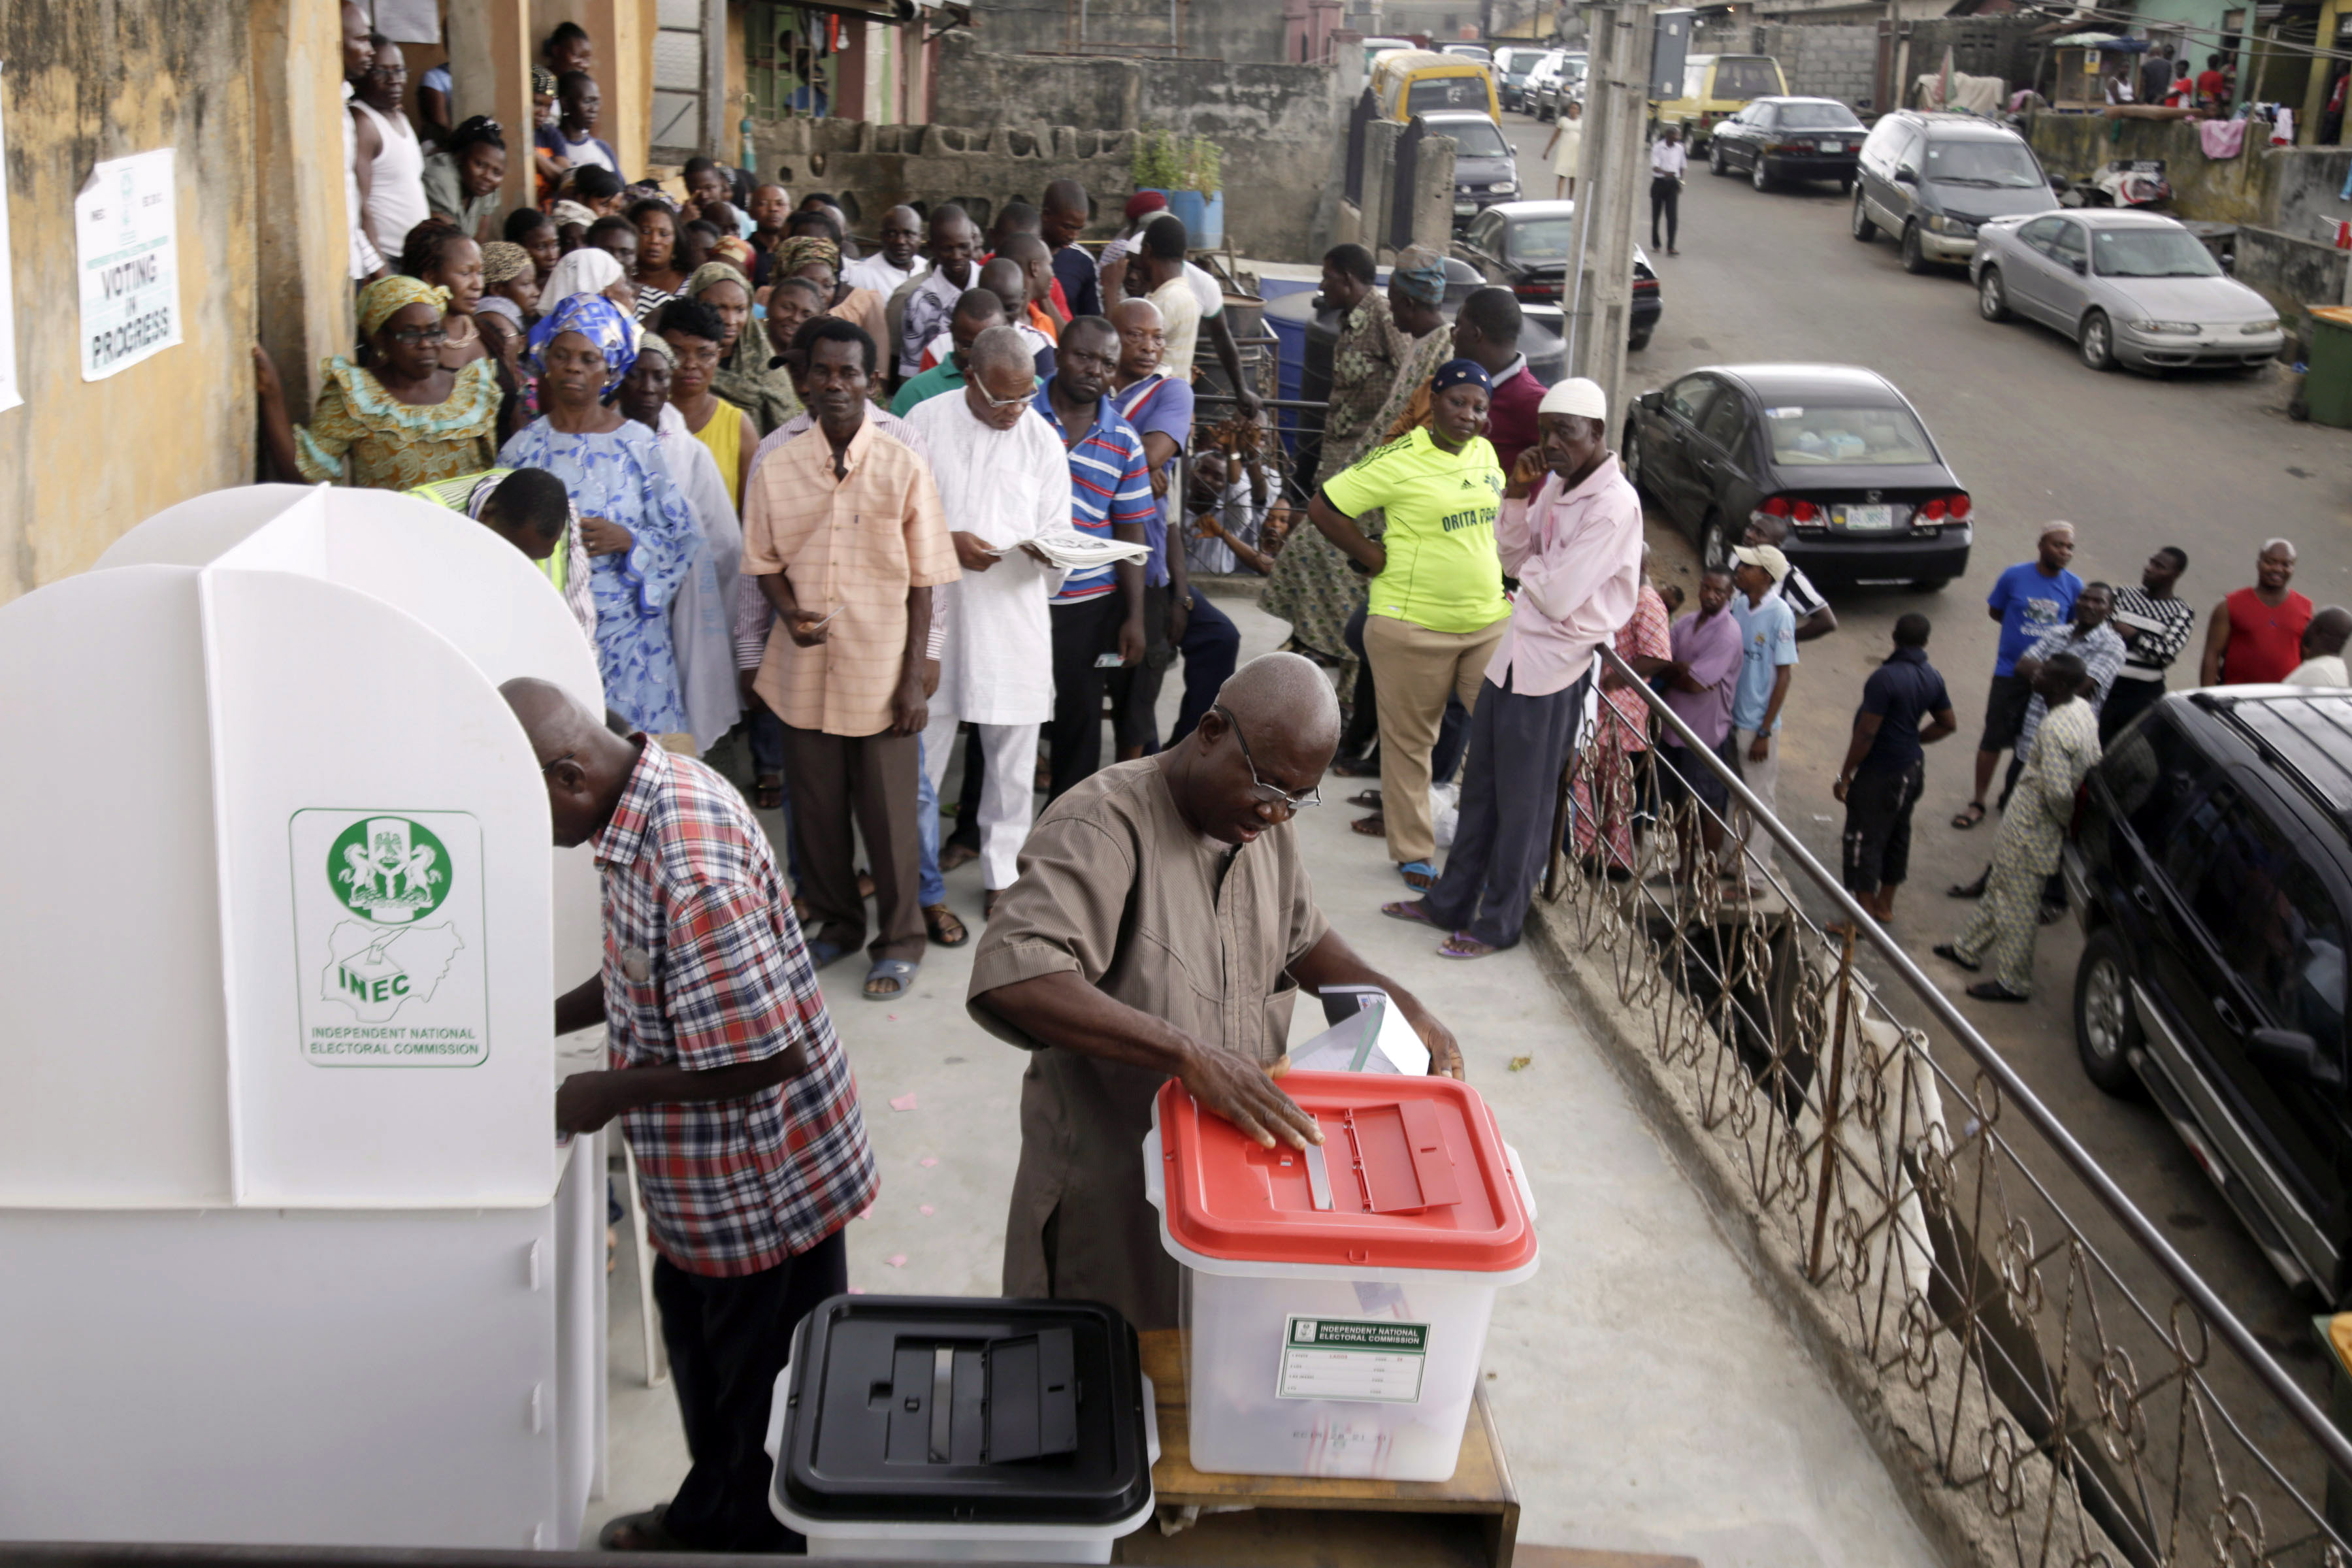 A man casts his ballot as Nigerians vote for a second day in Lagos, Nigeria, Sunday March 29, 2015. Voting in Nigeria's elections continued in certain areas on Sunday after technical problems prevented some people from casting their ballots on Saturday and despite extremist violence in the northeast and protests in the south. (AP Photo/Kunle Ogunfuyi)